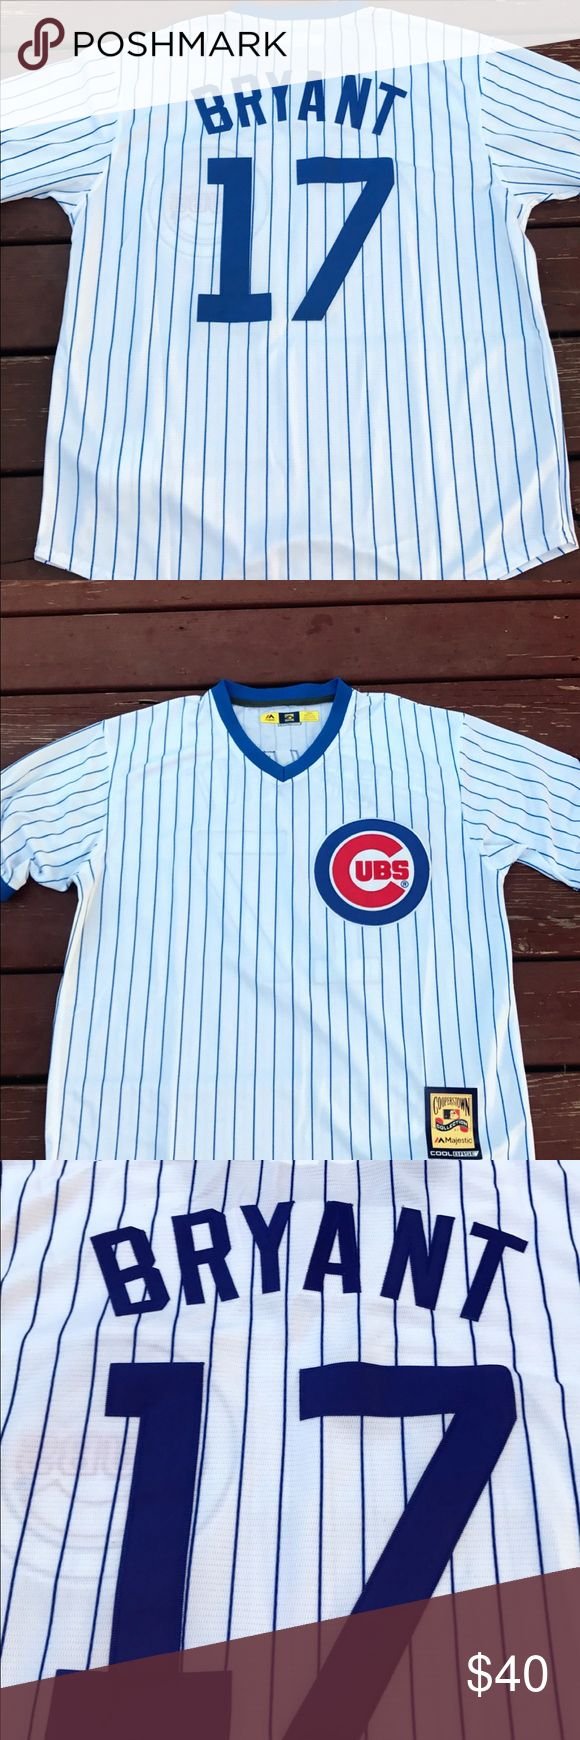 Men's Kris Bryant Cubs 1988 Throwback Jersey (L) Men's Chicago Cubs Kris Bryant 1988 Cooperstown Collection Throwback jersey. Brand new with tags, fully embroidered, size large jersey. Please check my listings for more Cubs merchandise for Men, Women and kids. I recently closed my retail store and am liquidating everything cheap. It's all gotta go.  Over 300 jerseys! Don't see something? Ask! Go Cubs! Majestic Shirts Tees - Short Sleeve